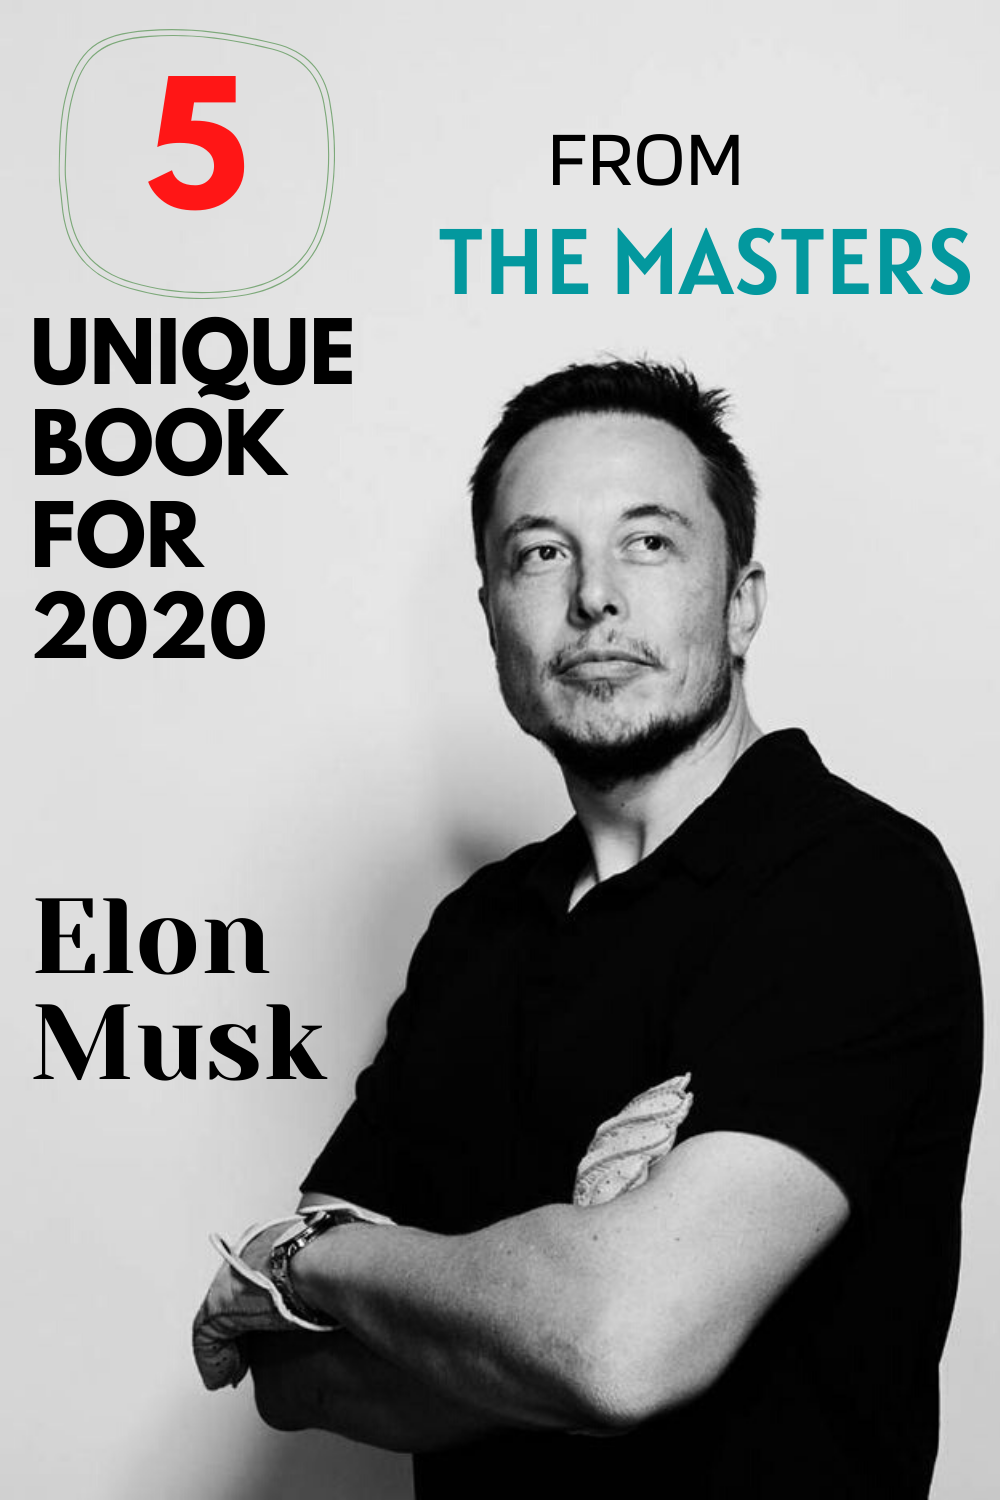 5 Book Suggestions For Our Future From Elon Musk Personal Growth Books Book Suggestions Elon Musk Book